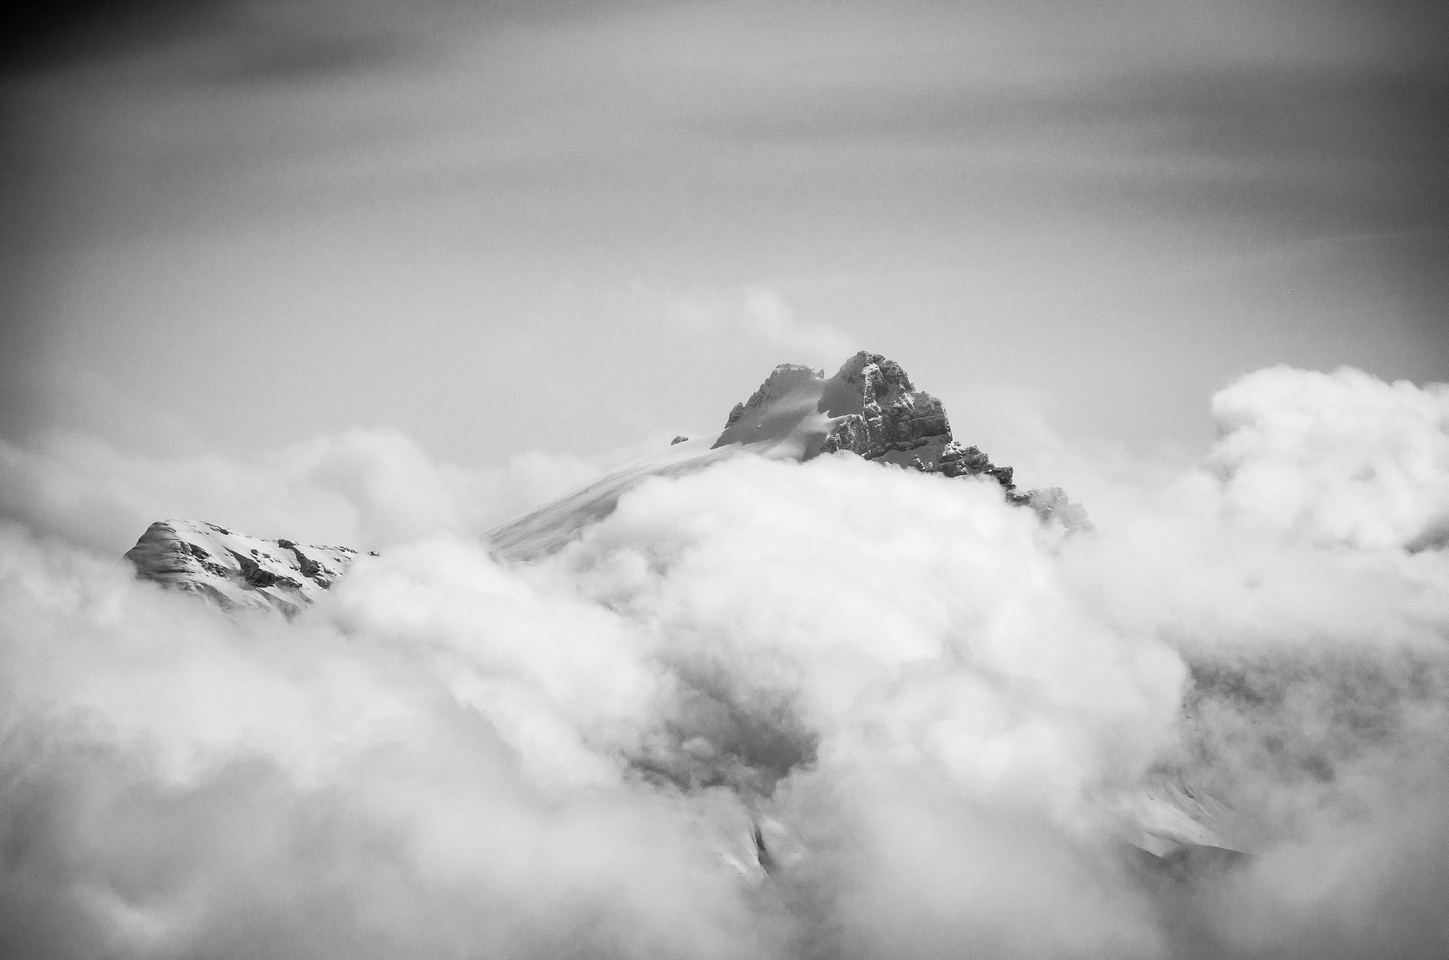 Mount Hector (R) and Little Hector (L) playing peek-a-boo amongst the clouds.